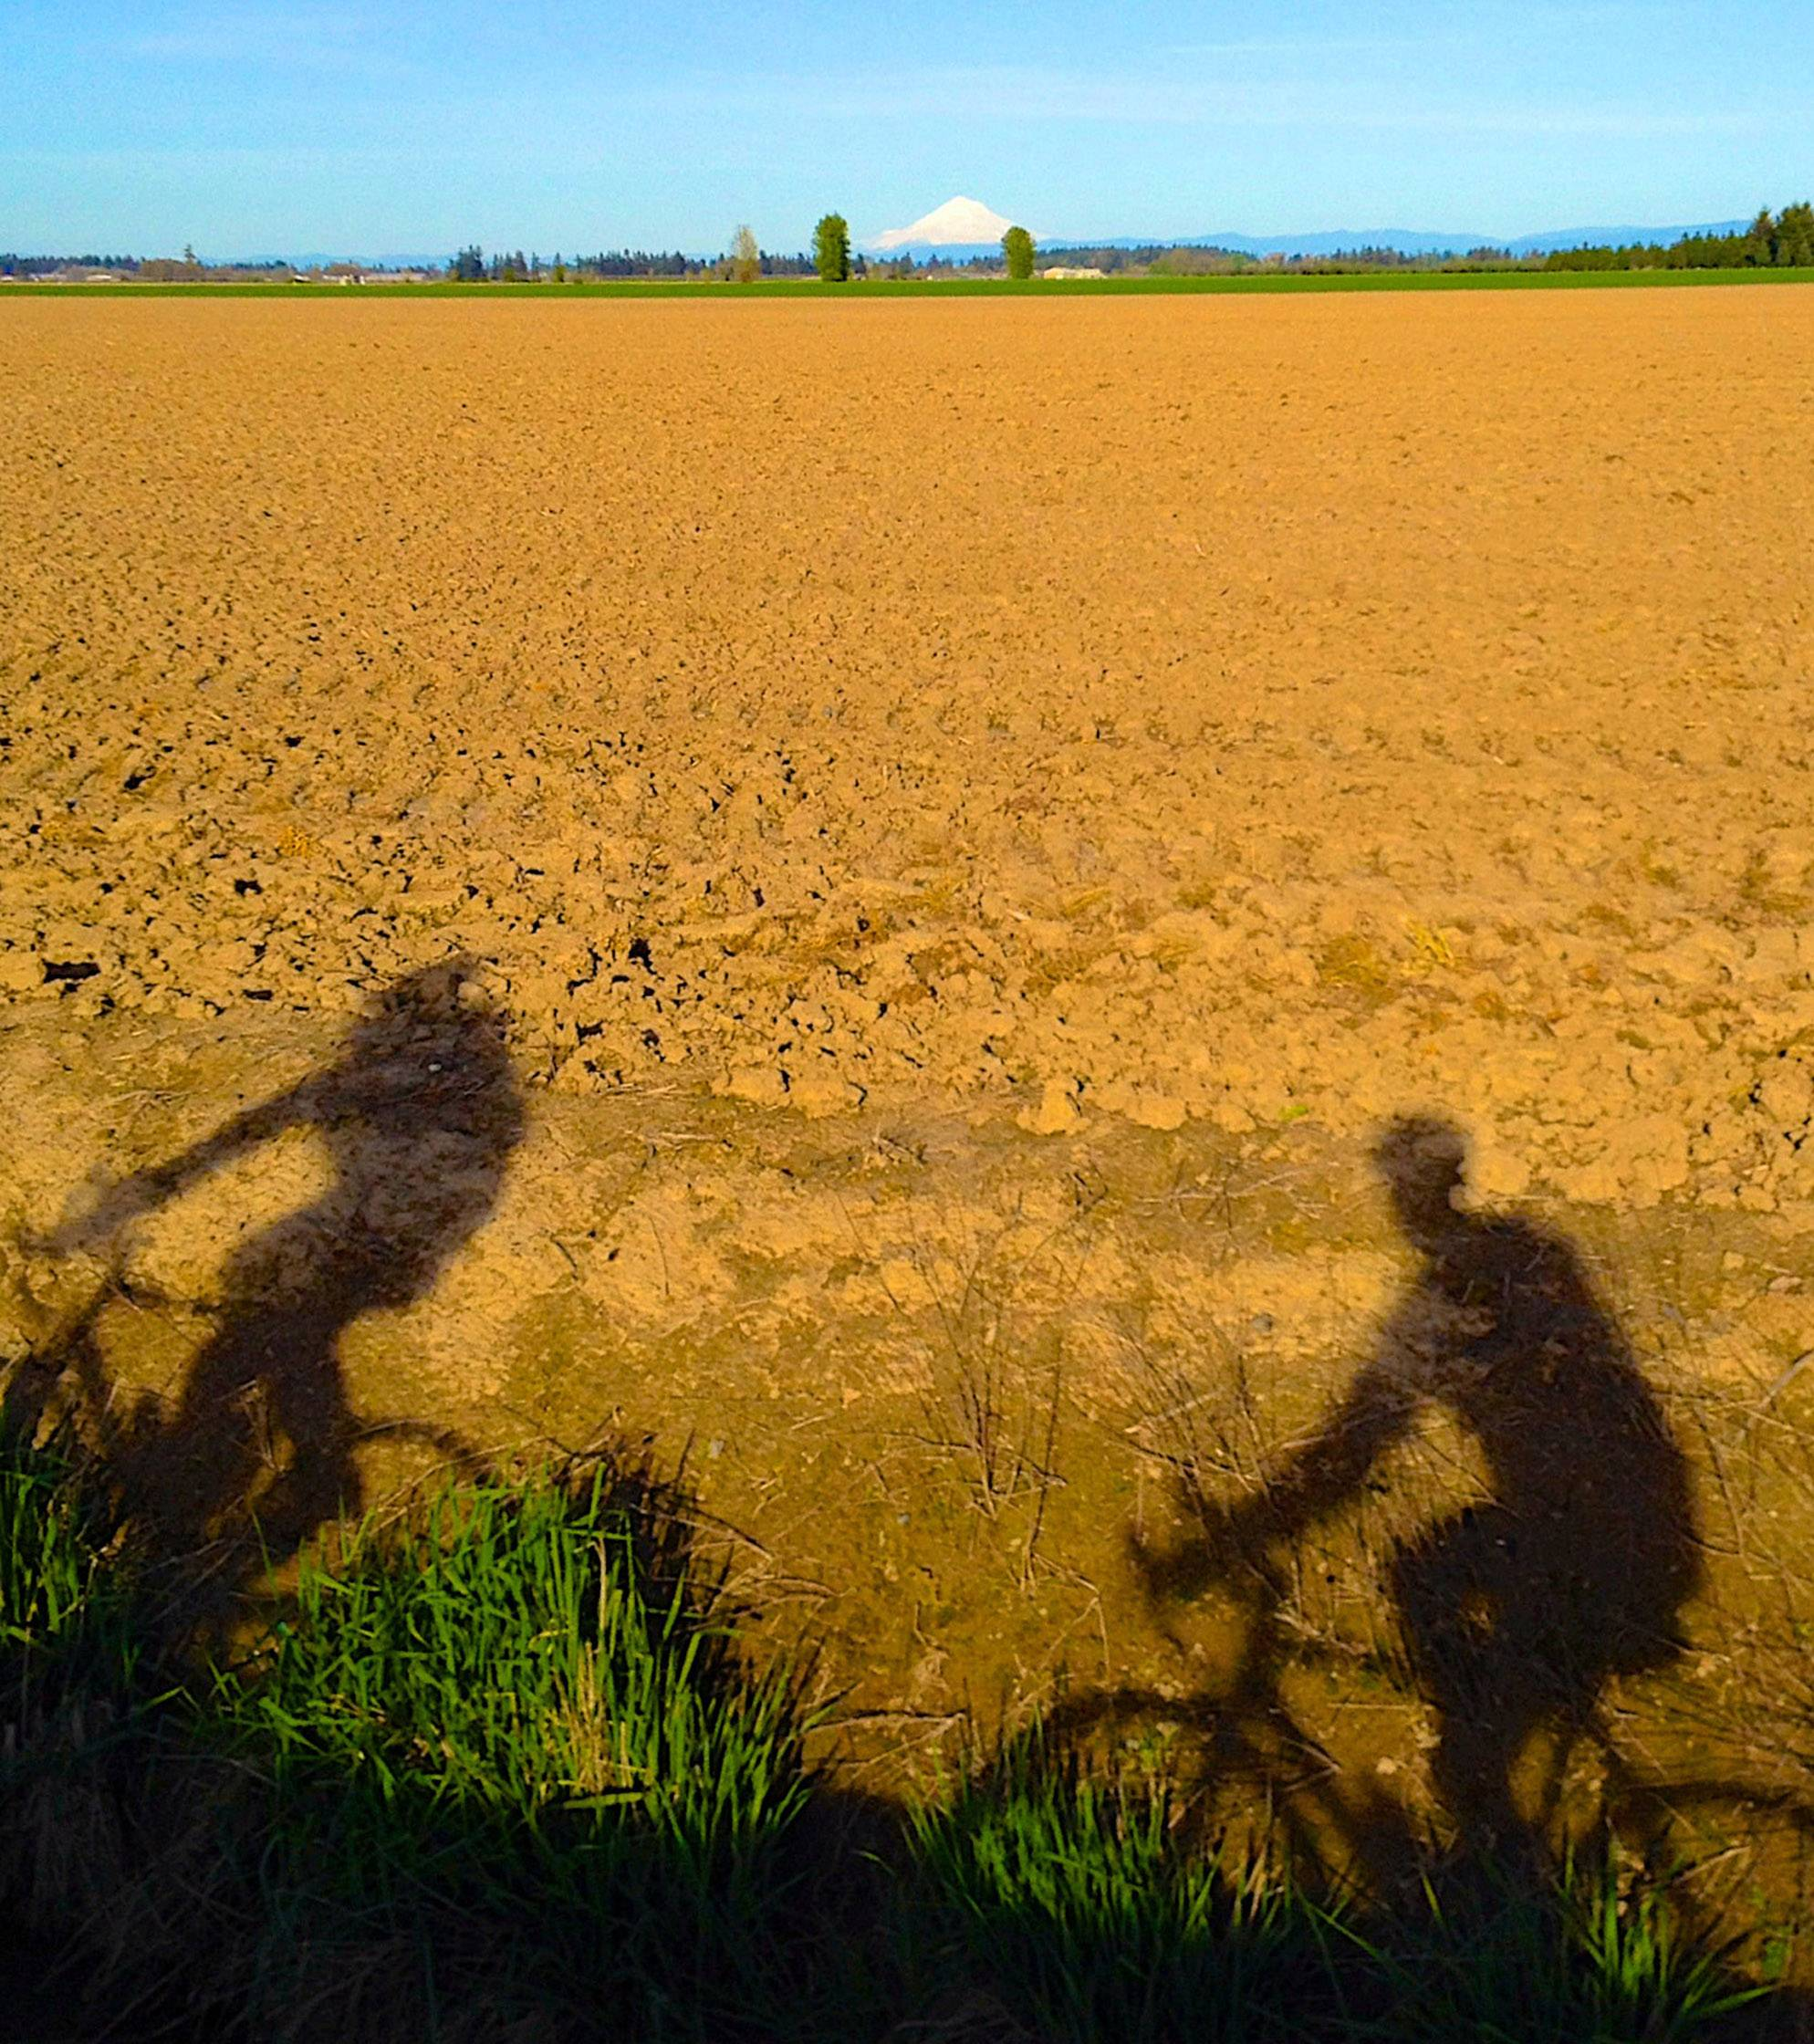 Bicyclists pass by the countryside near Portland, Oregon earlier this month.